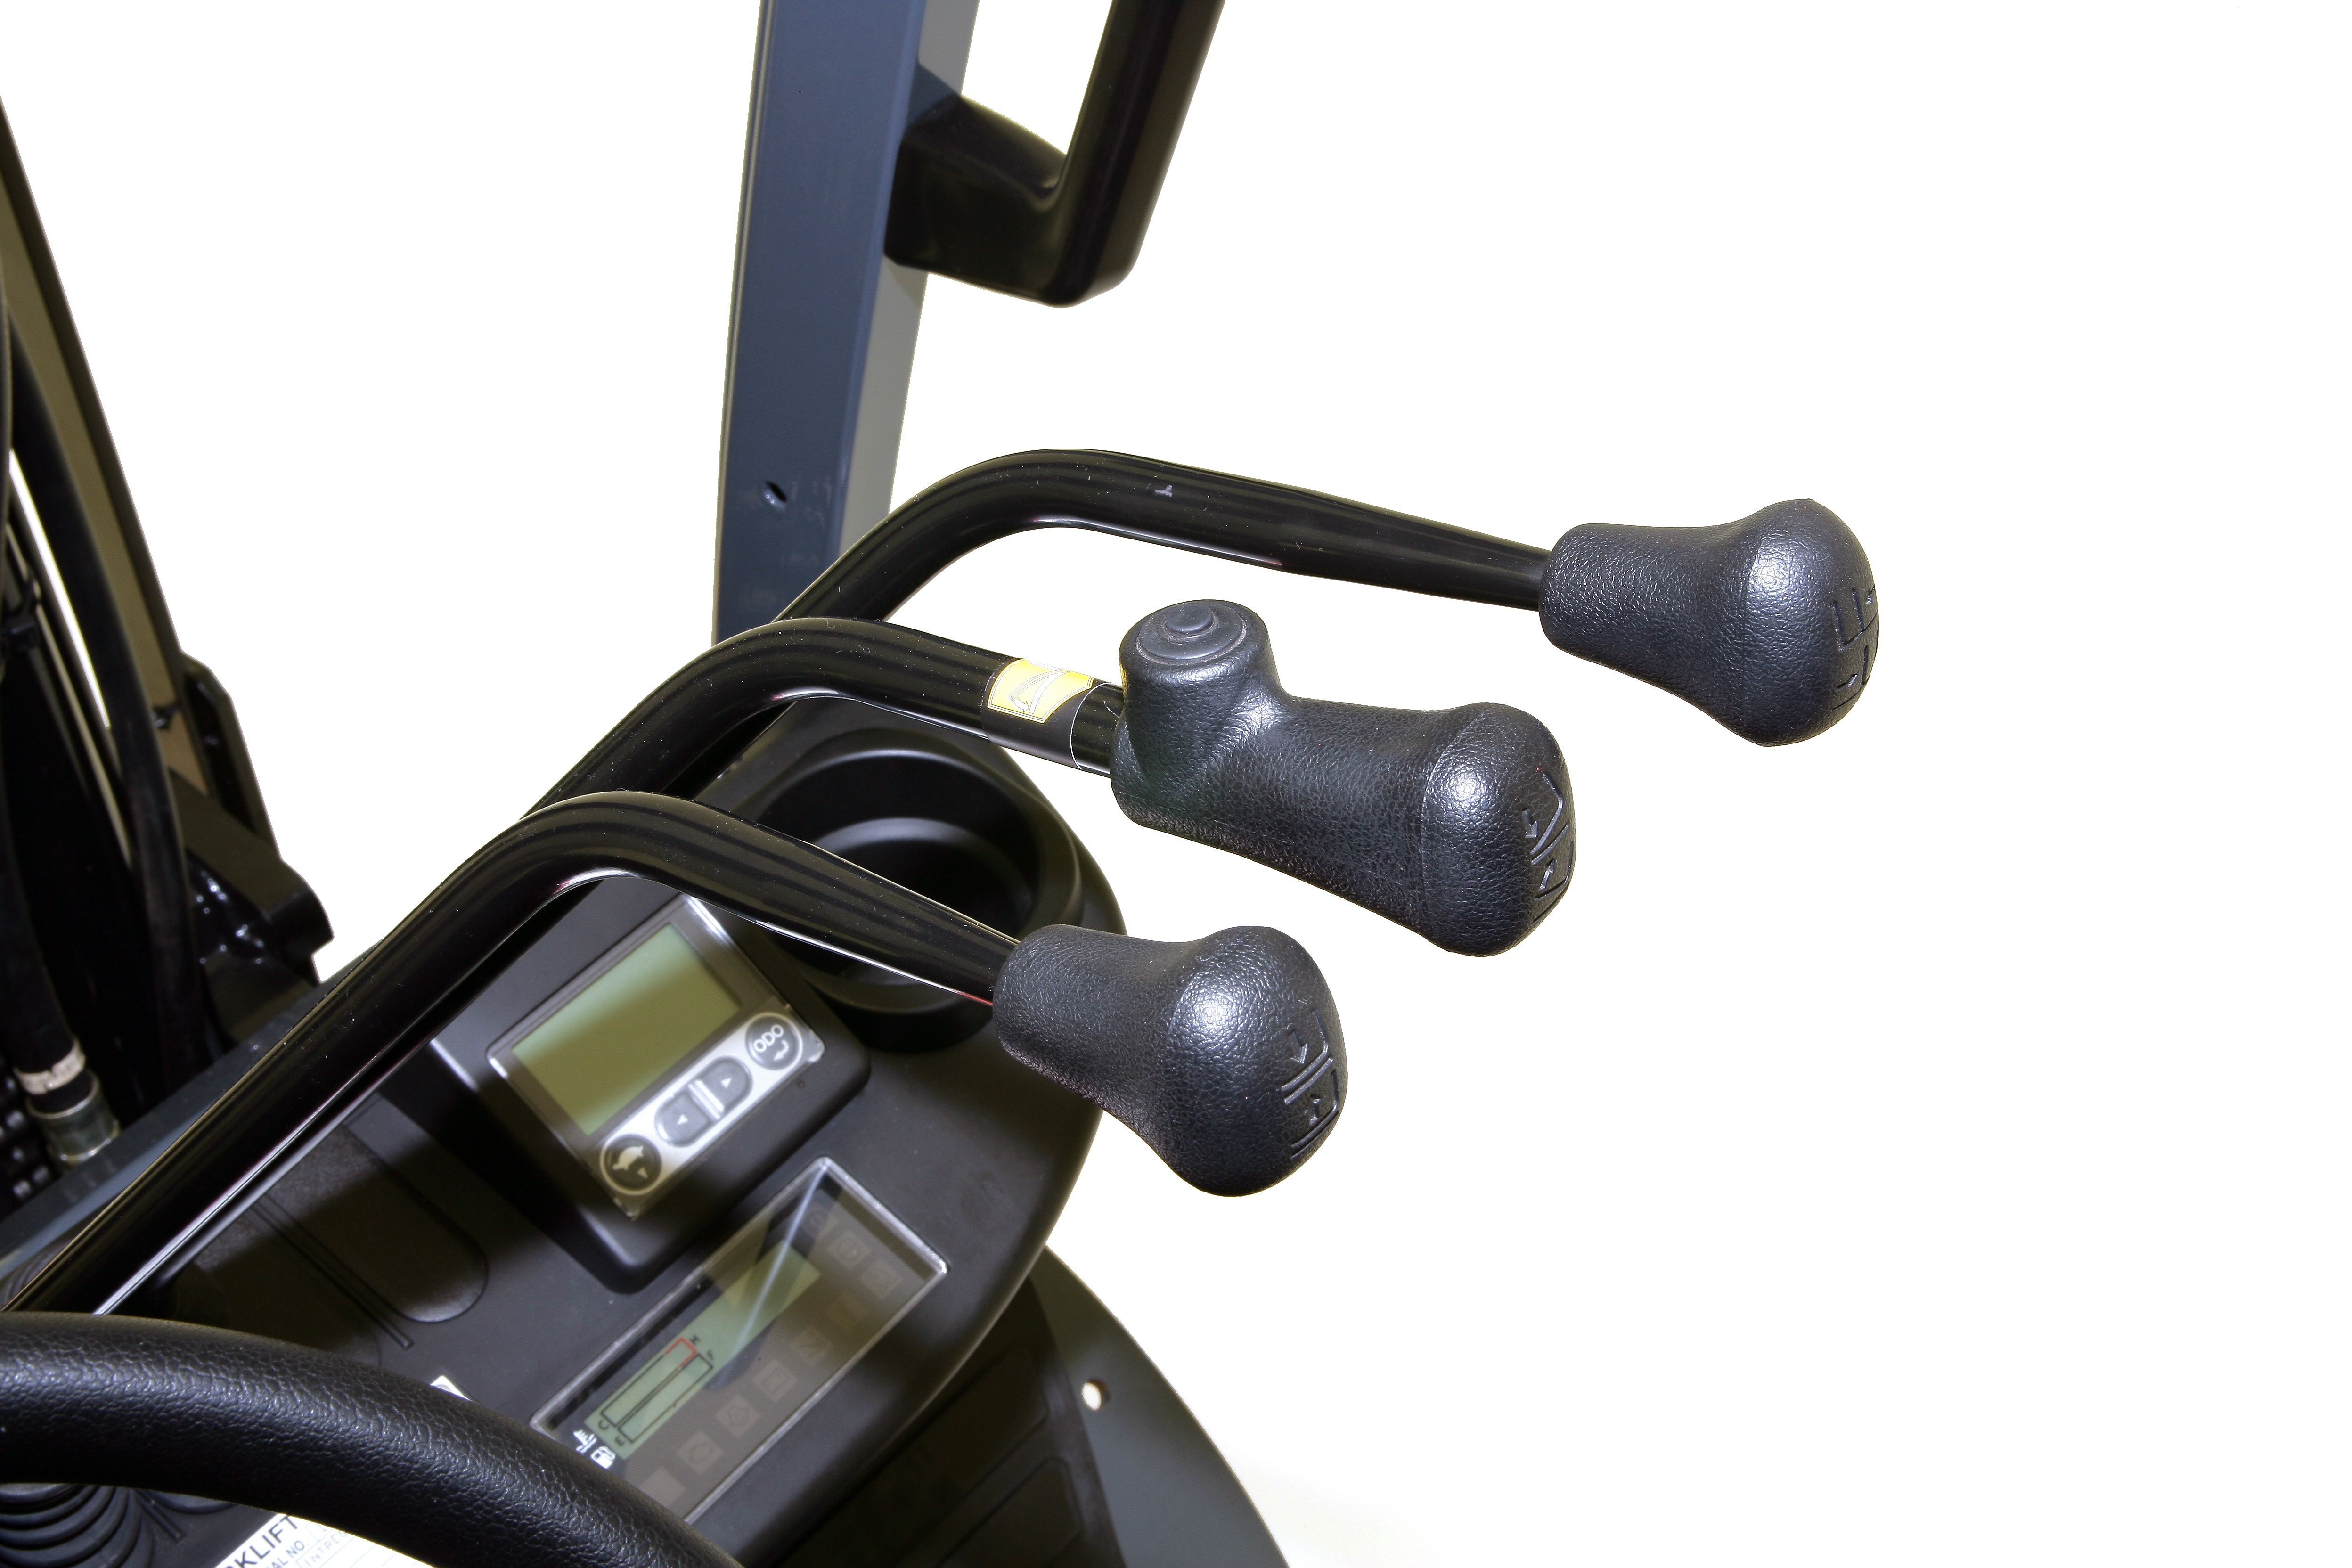 Close-up photo of controls for Toyota forklift